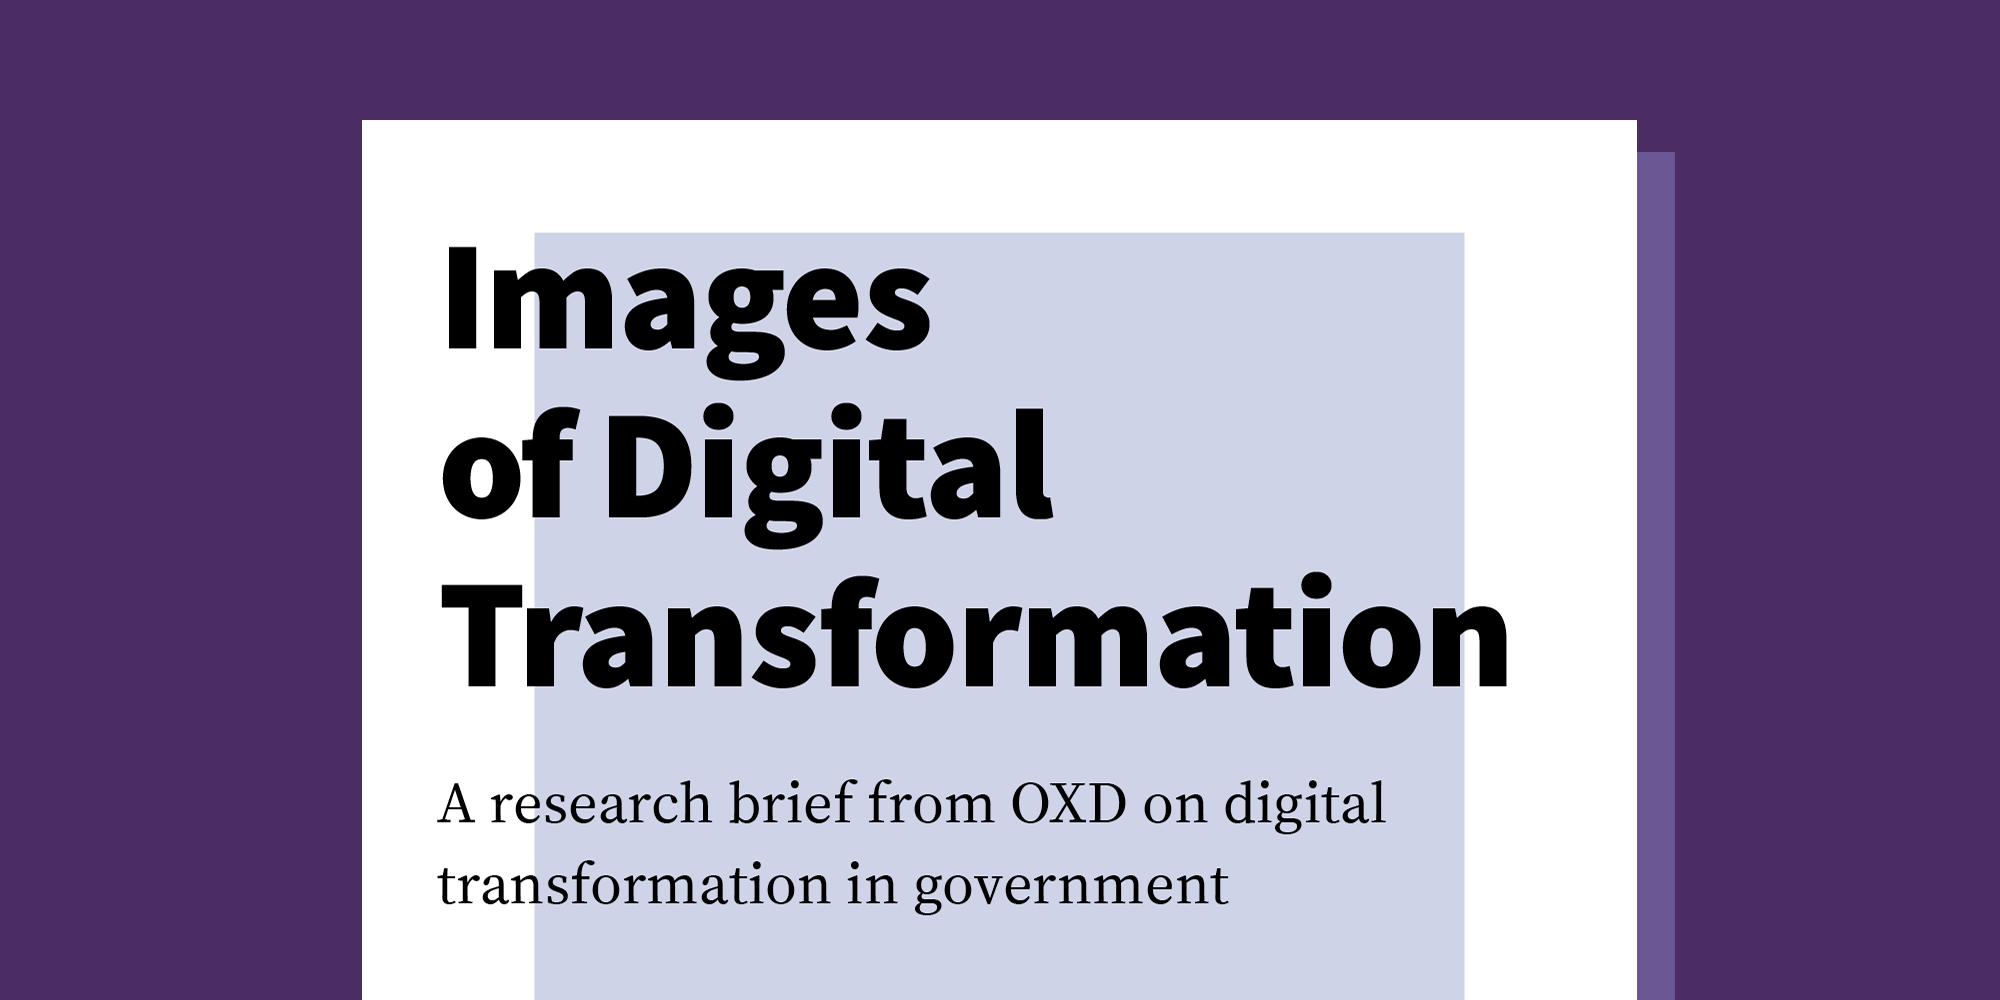 Images of Digital Transformation Research Brief